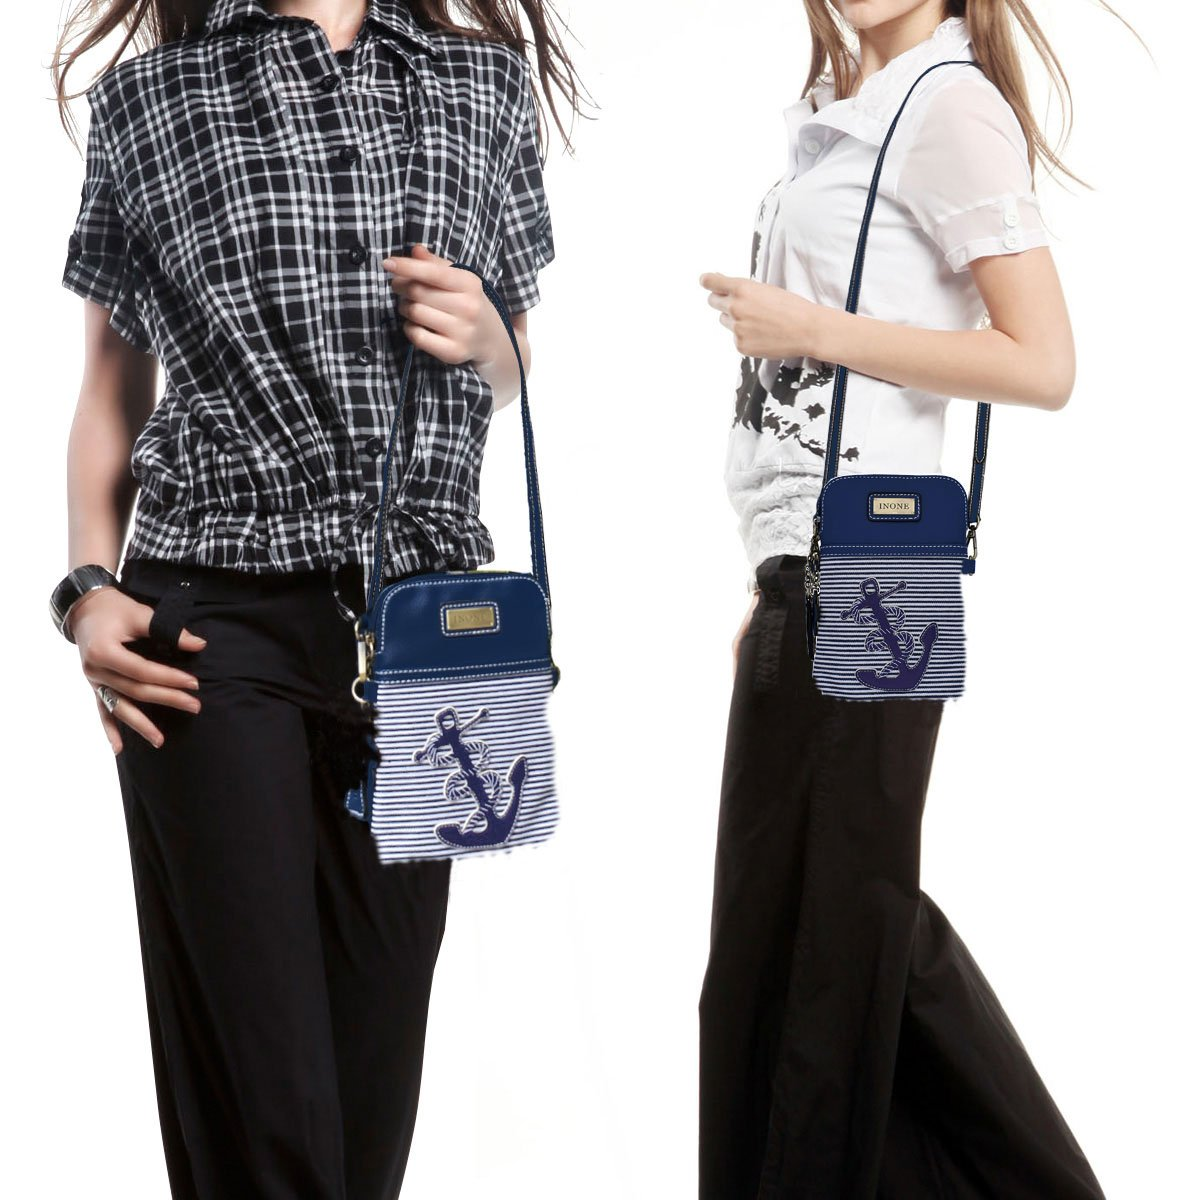 Anchor Crossbody Bag Nautical iPhone Cell Phone Purse Bag PU Leather Canvas Handbag for Smartphone Credit Card Passport Keys by inOne (Image #6)